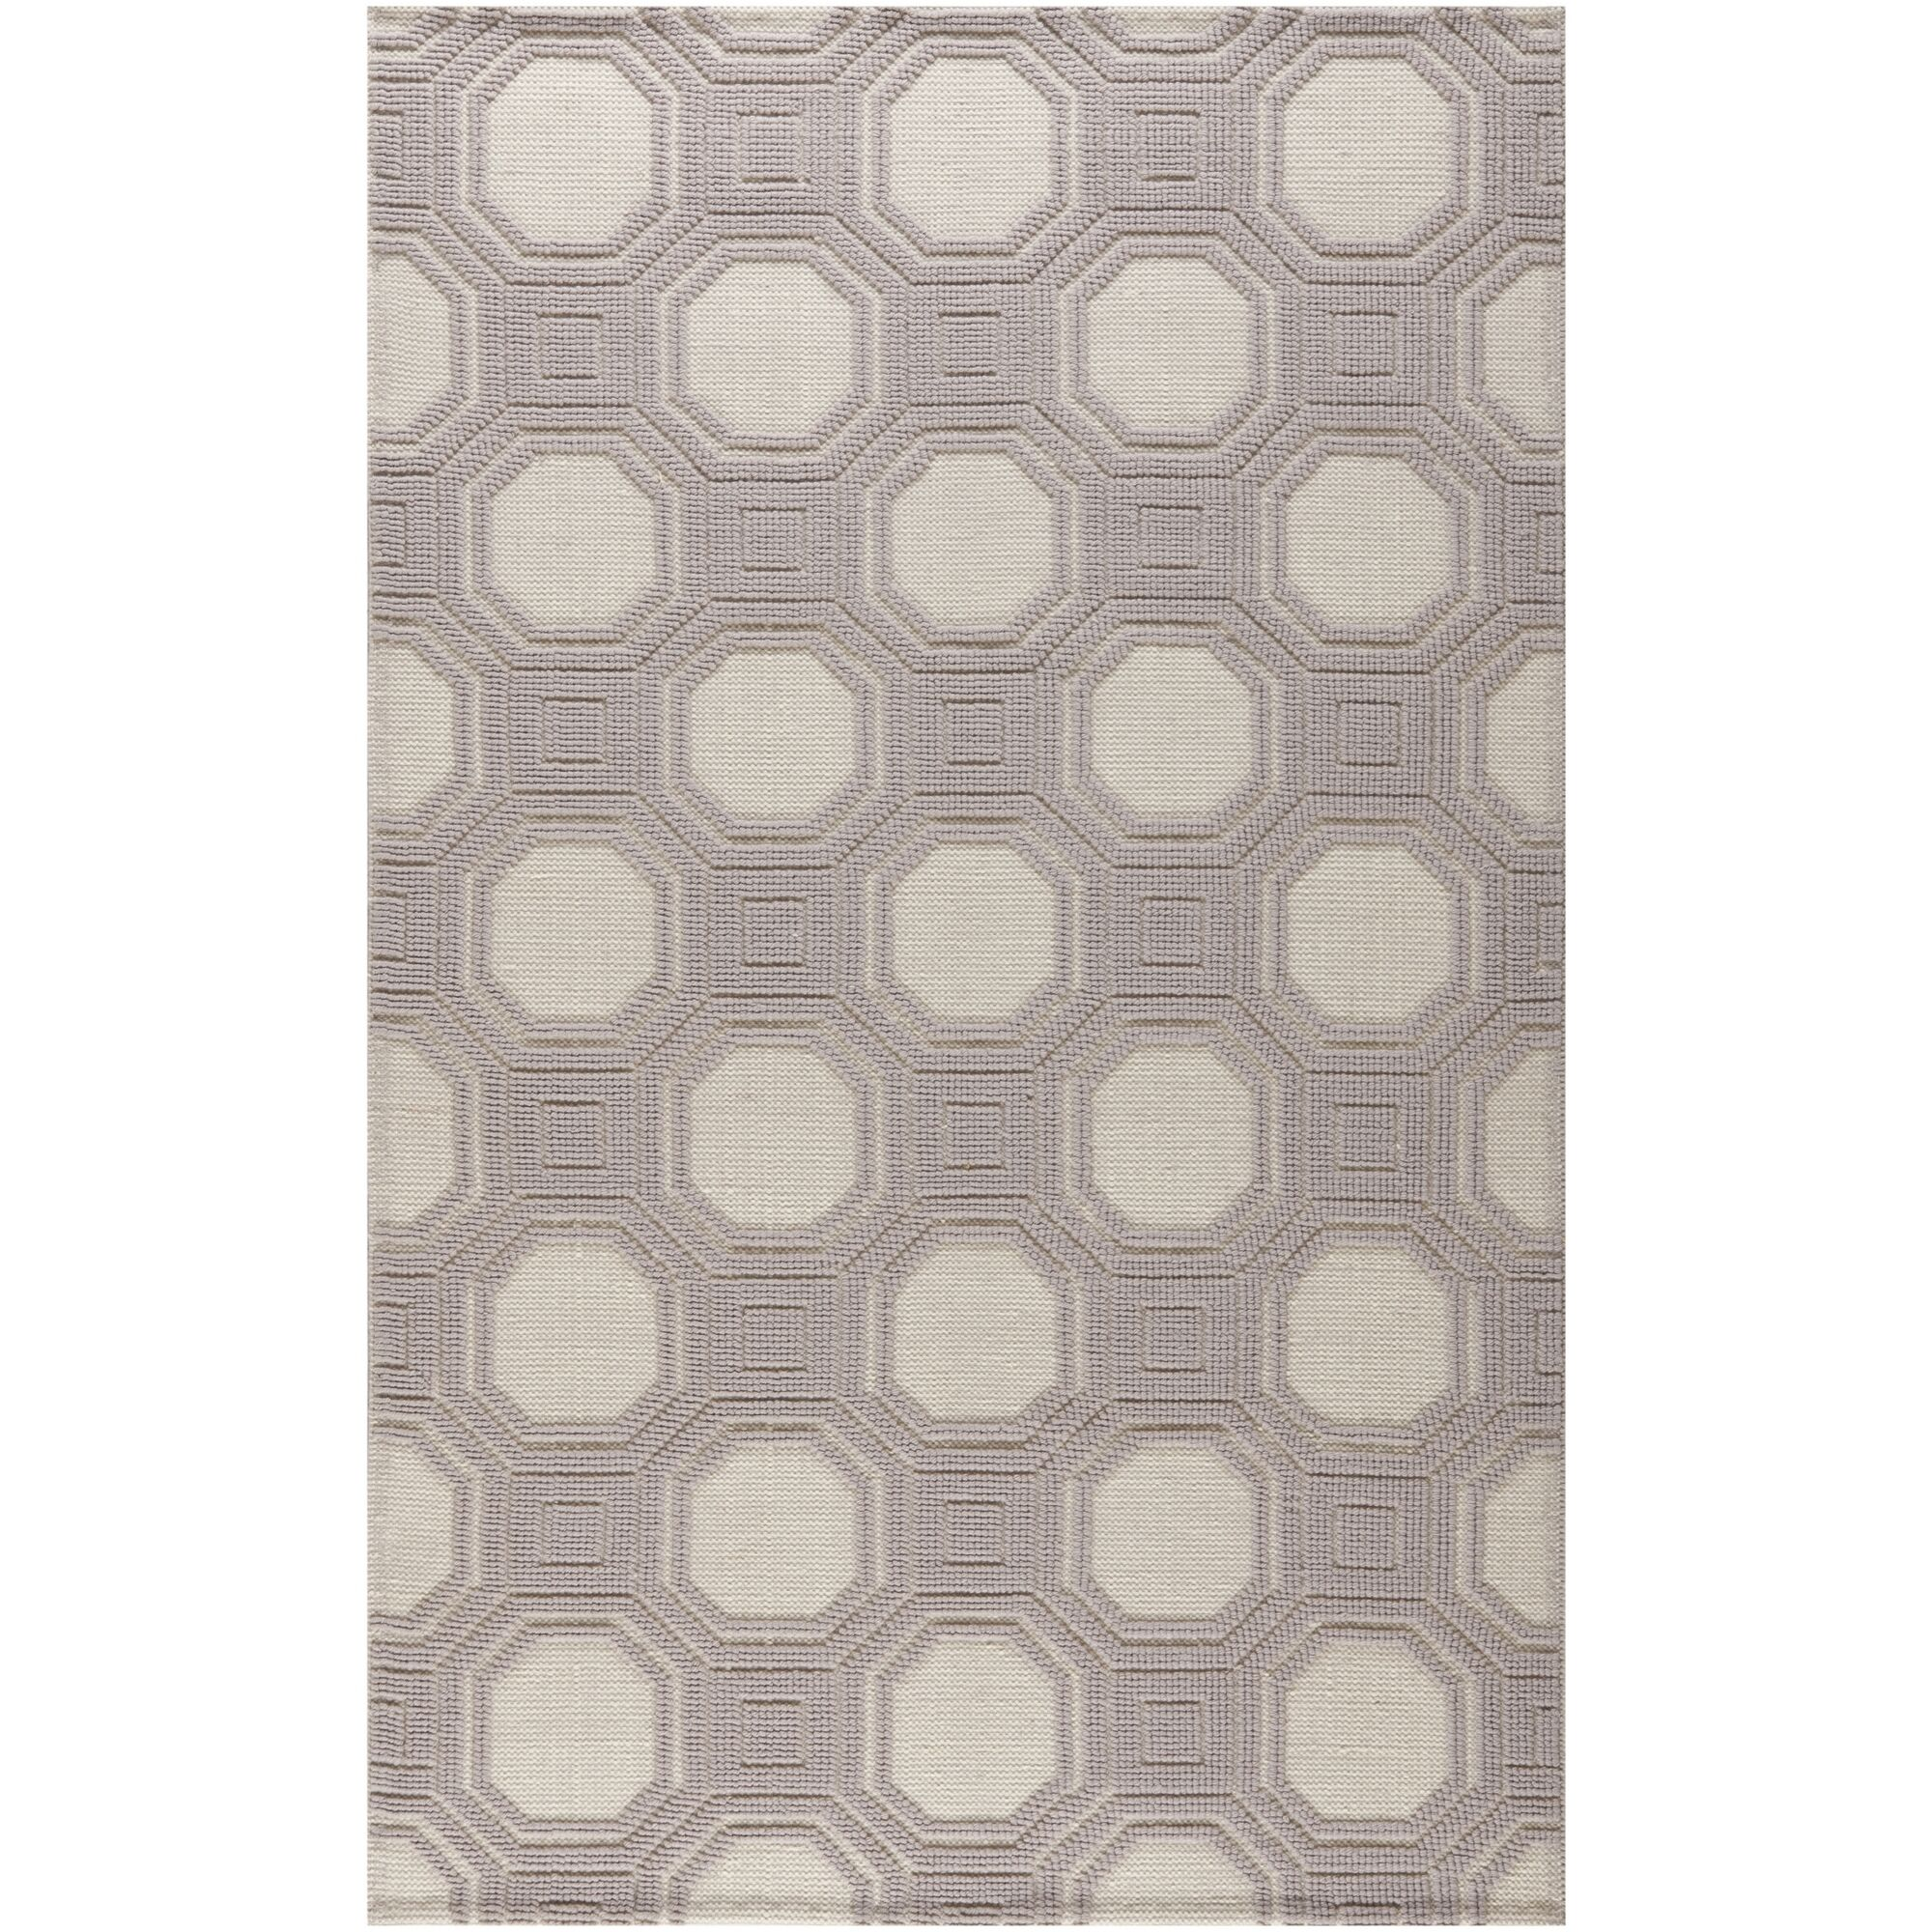 Martha Stewart Puzzle Floral Ivory/Purple Area Rug Rug Size: Rectangle 4' x 6'